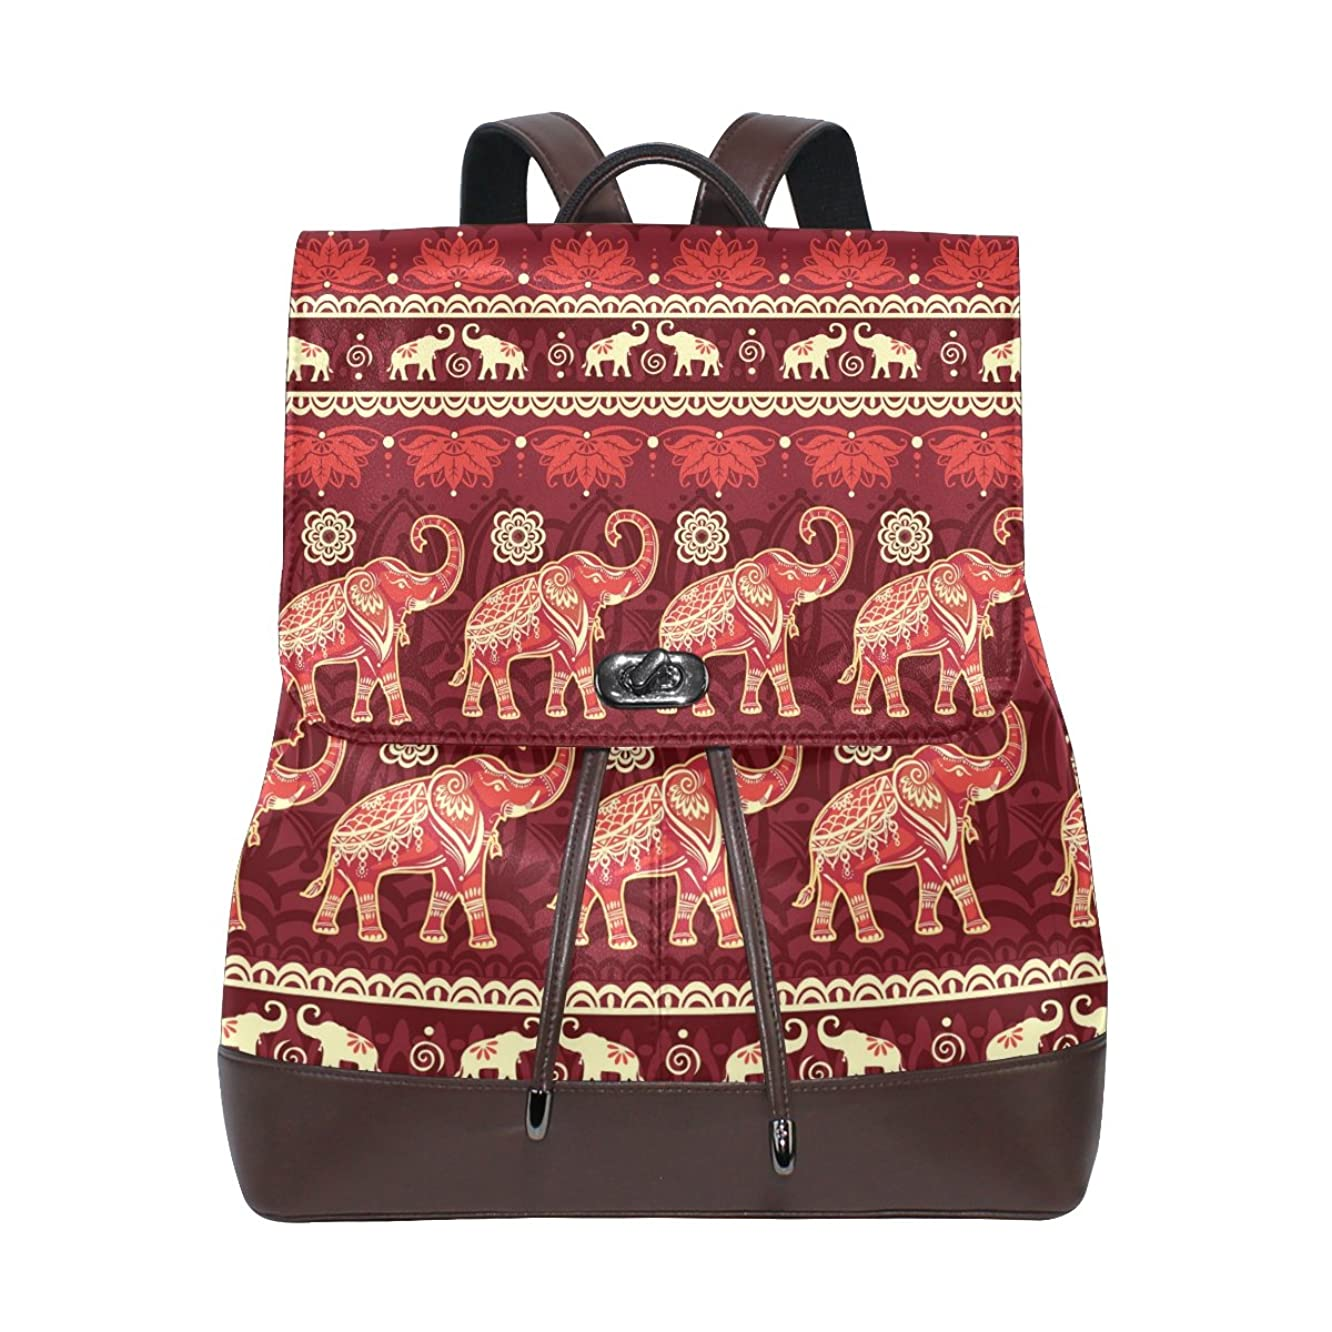 KUWT Seamless Pattern India Tribal Elephant PU Leather Backpack Photo Custom Shoulder Bag School College Book Bag Casual Daypacks Diaper Bag for Women and Girl